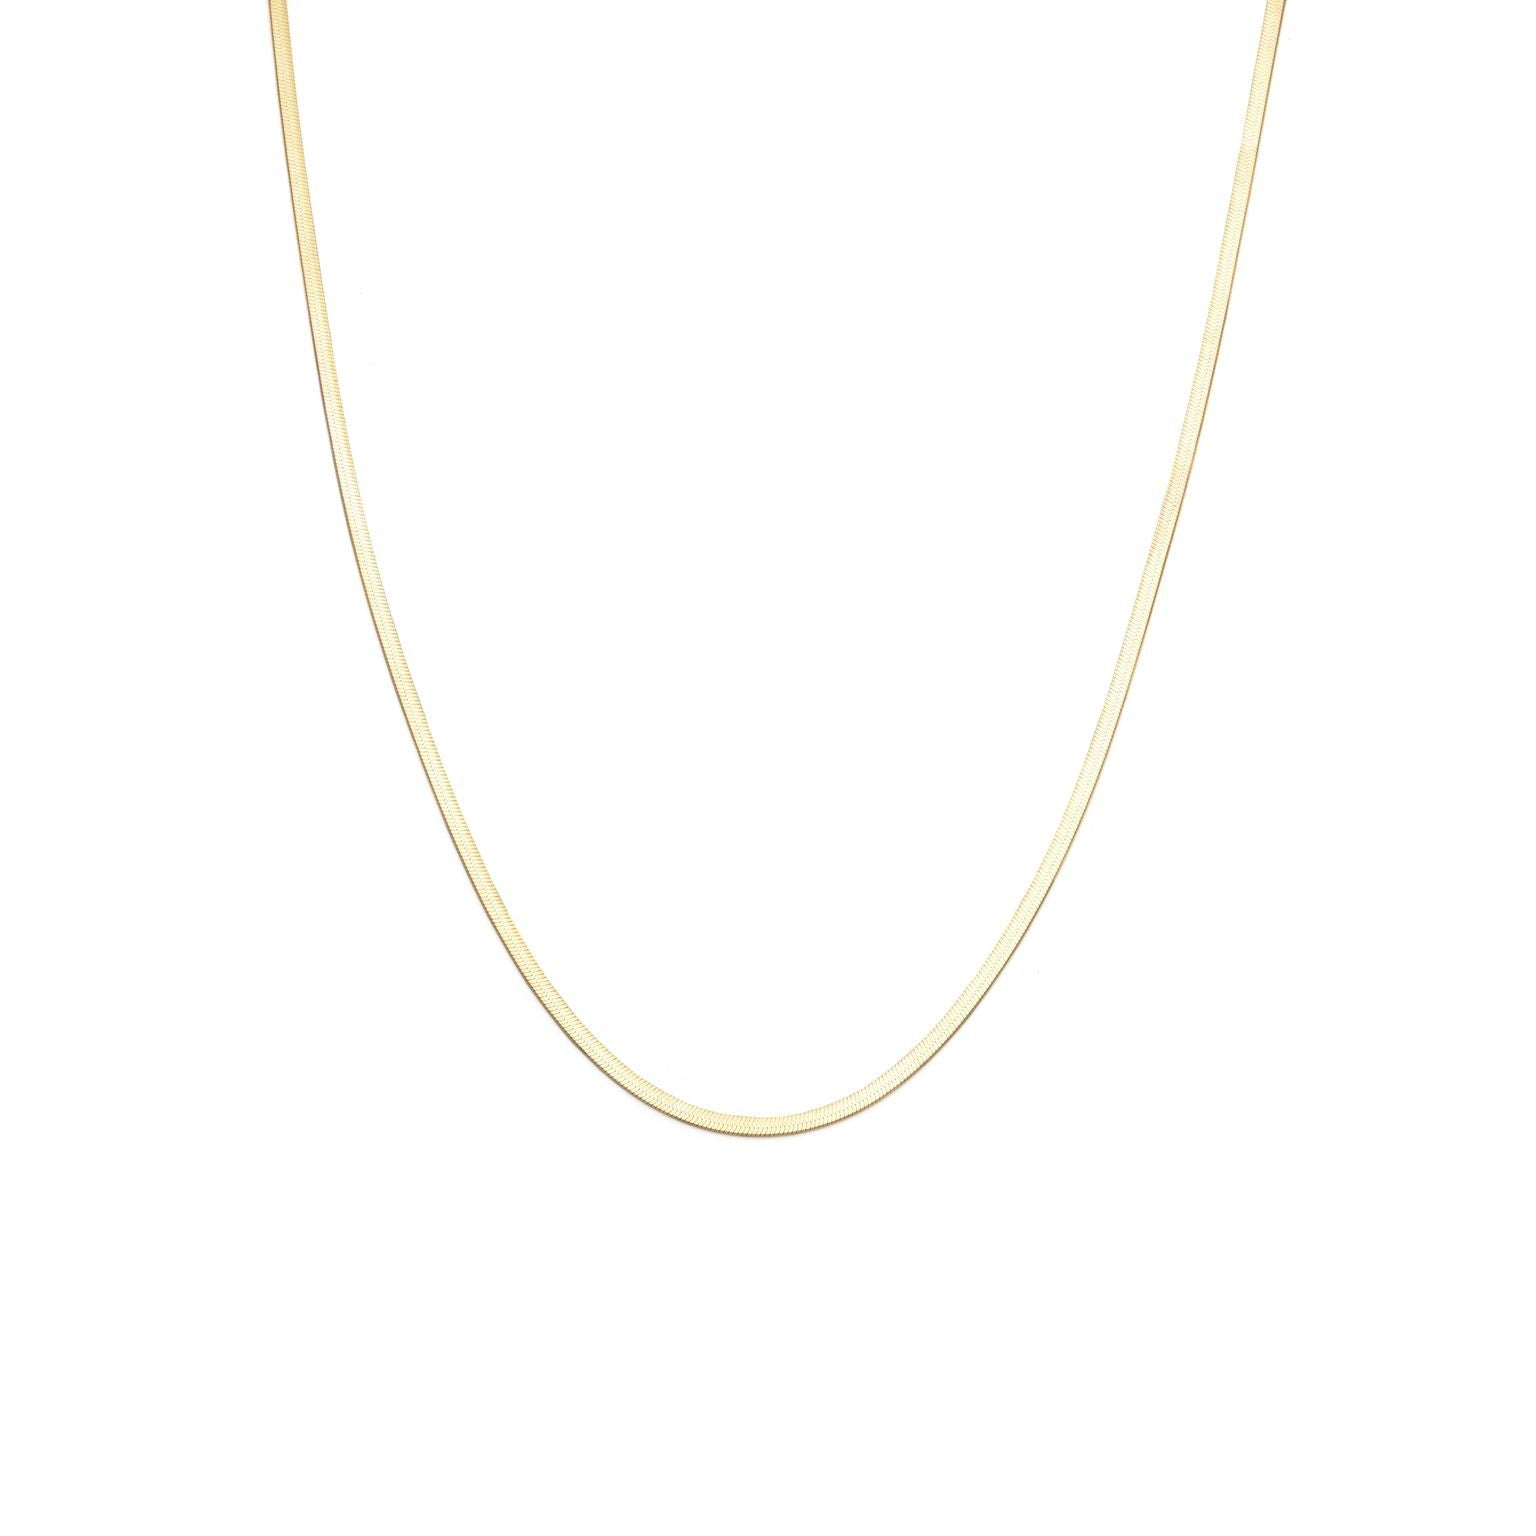 2mm Herringbone Chain - Gold Vermeil